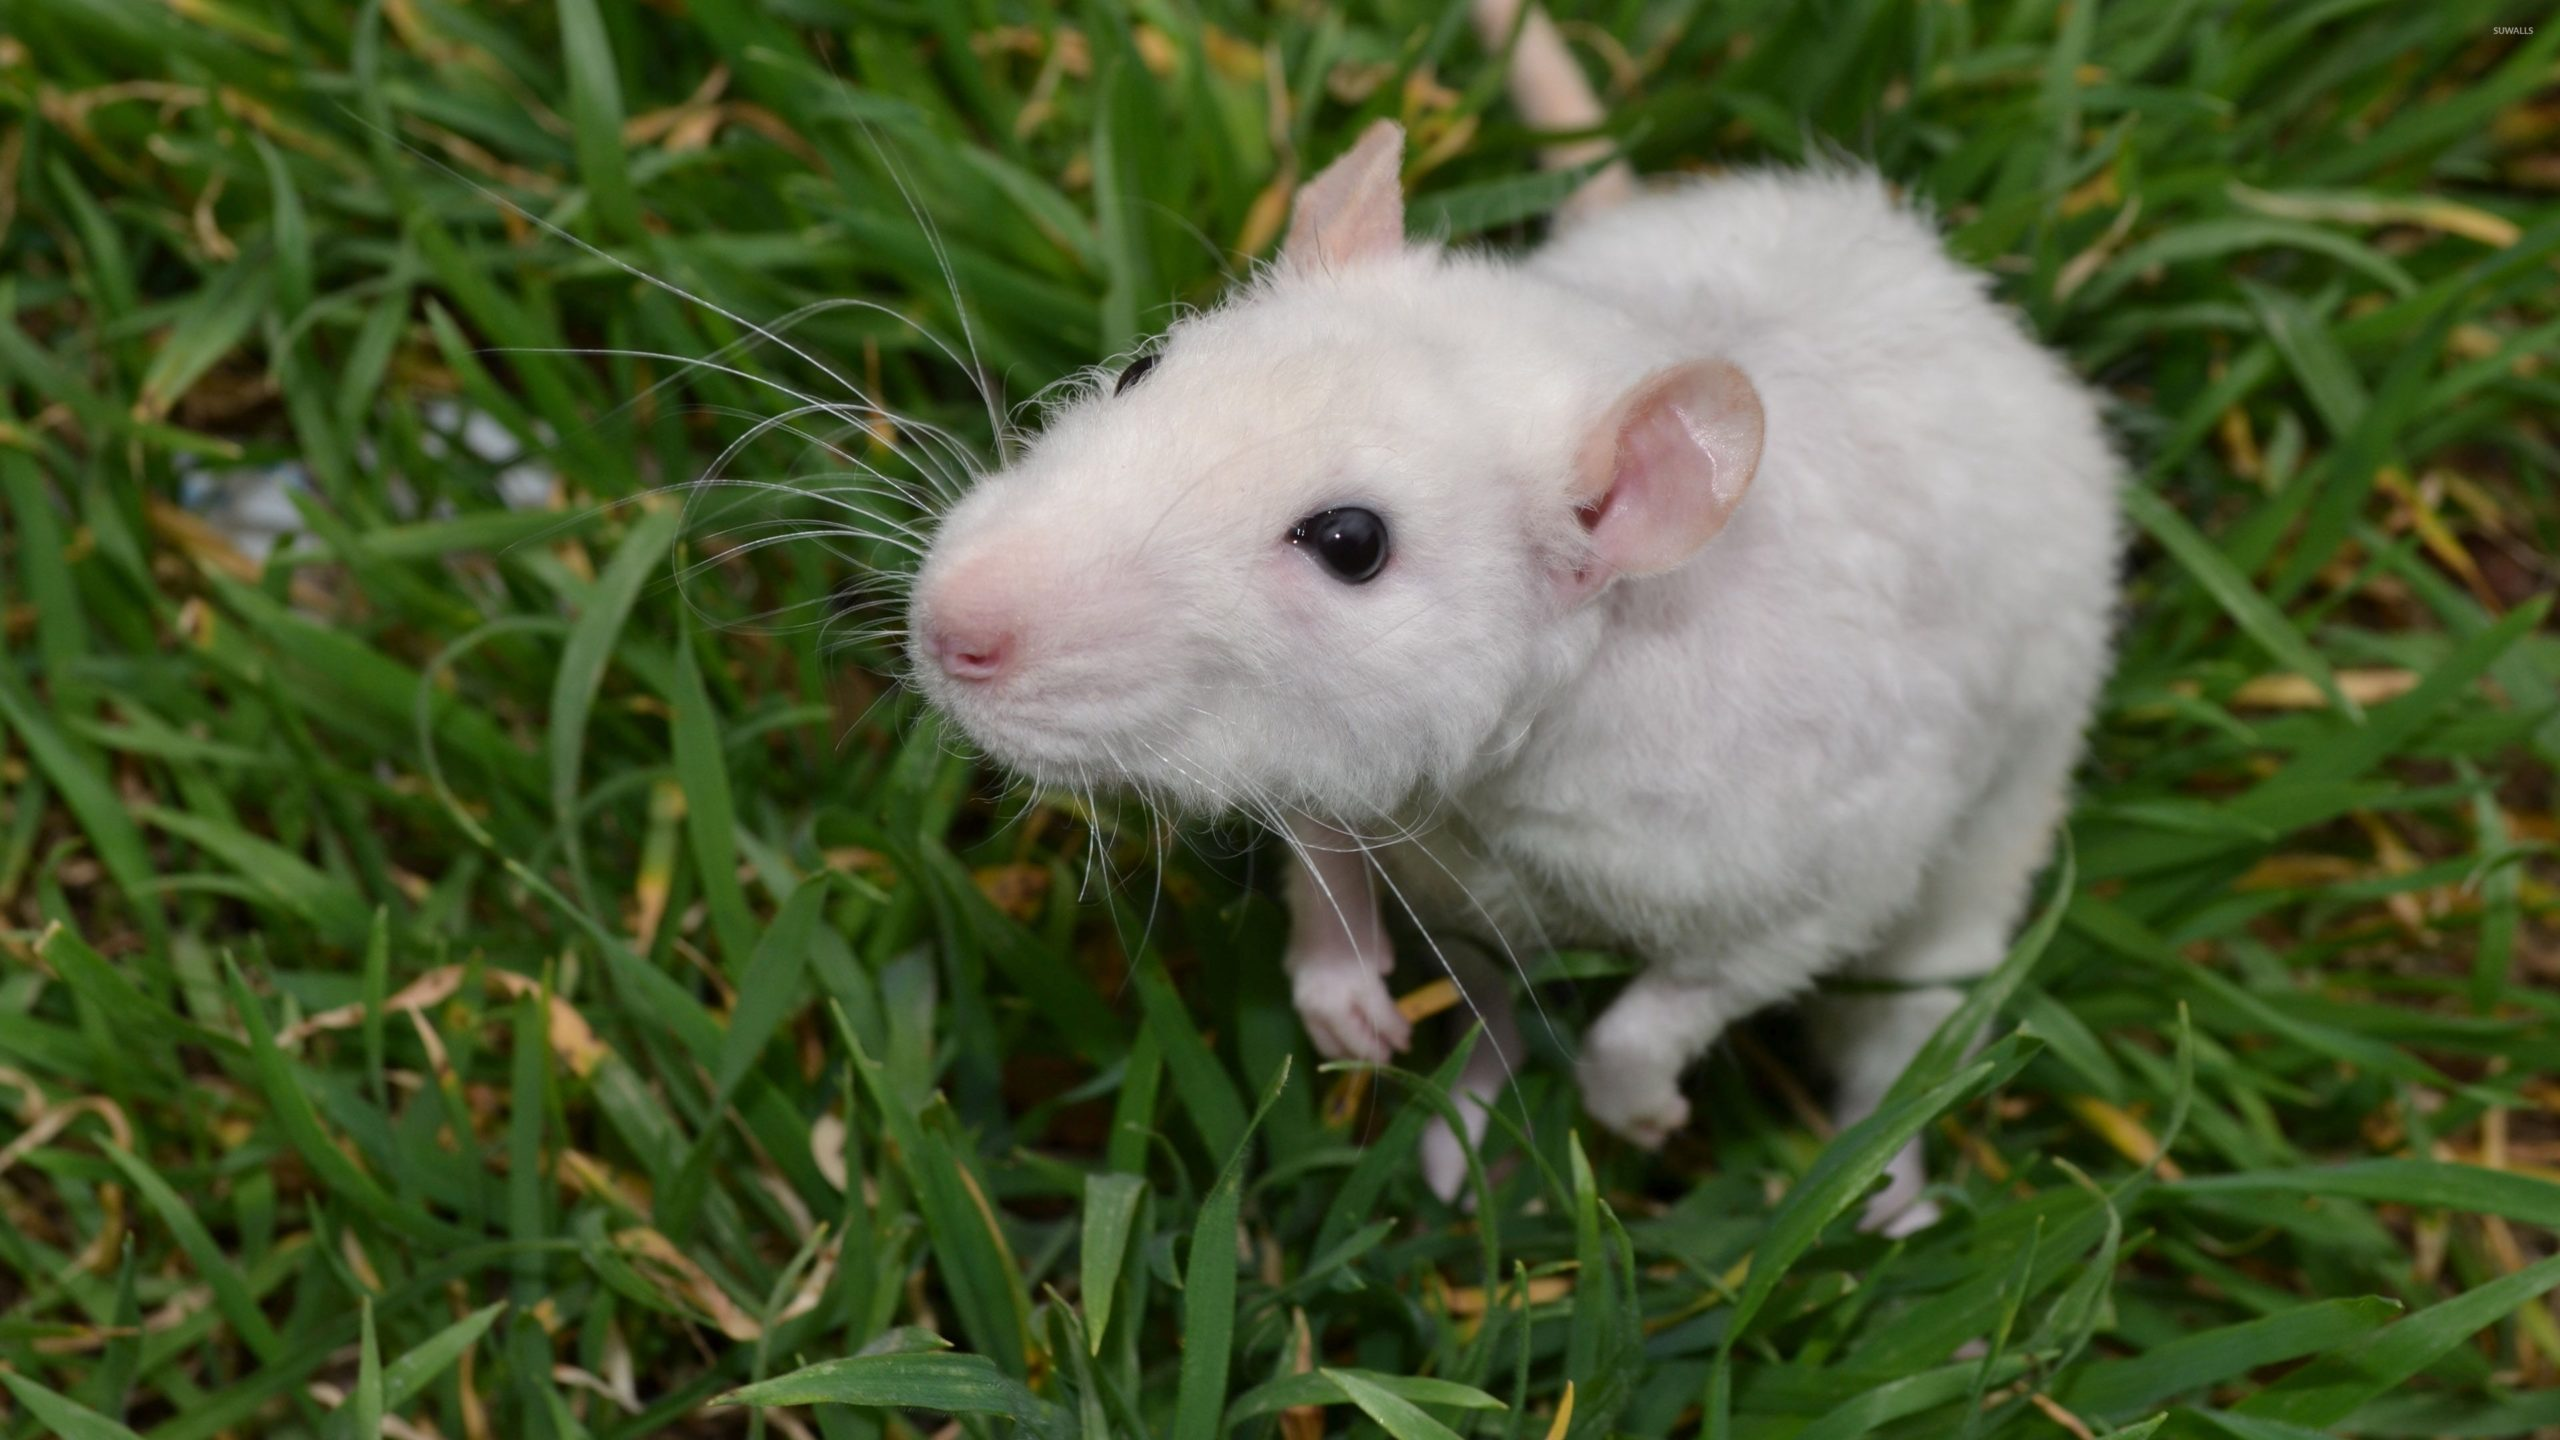 White Little Mouse In The Grass 50460 3840×2160 Wallpaper